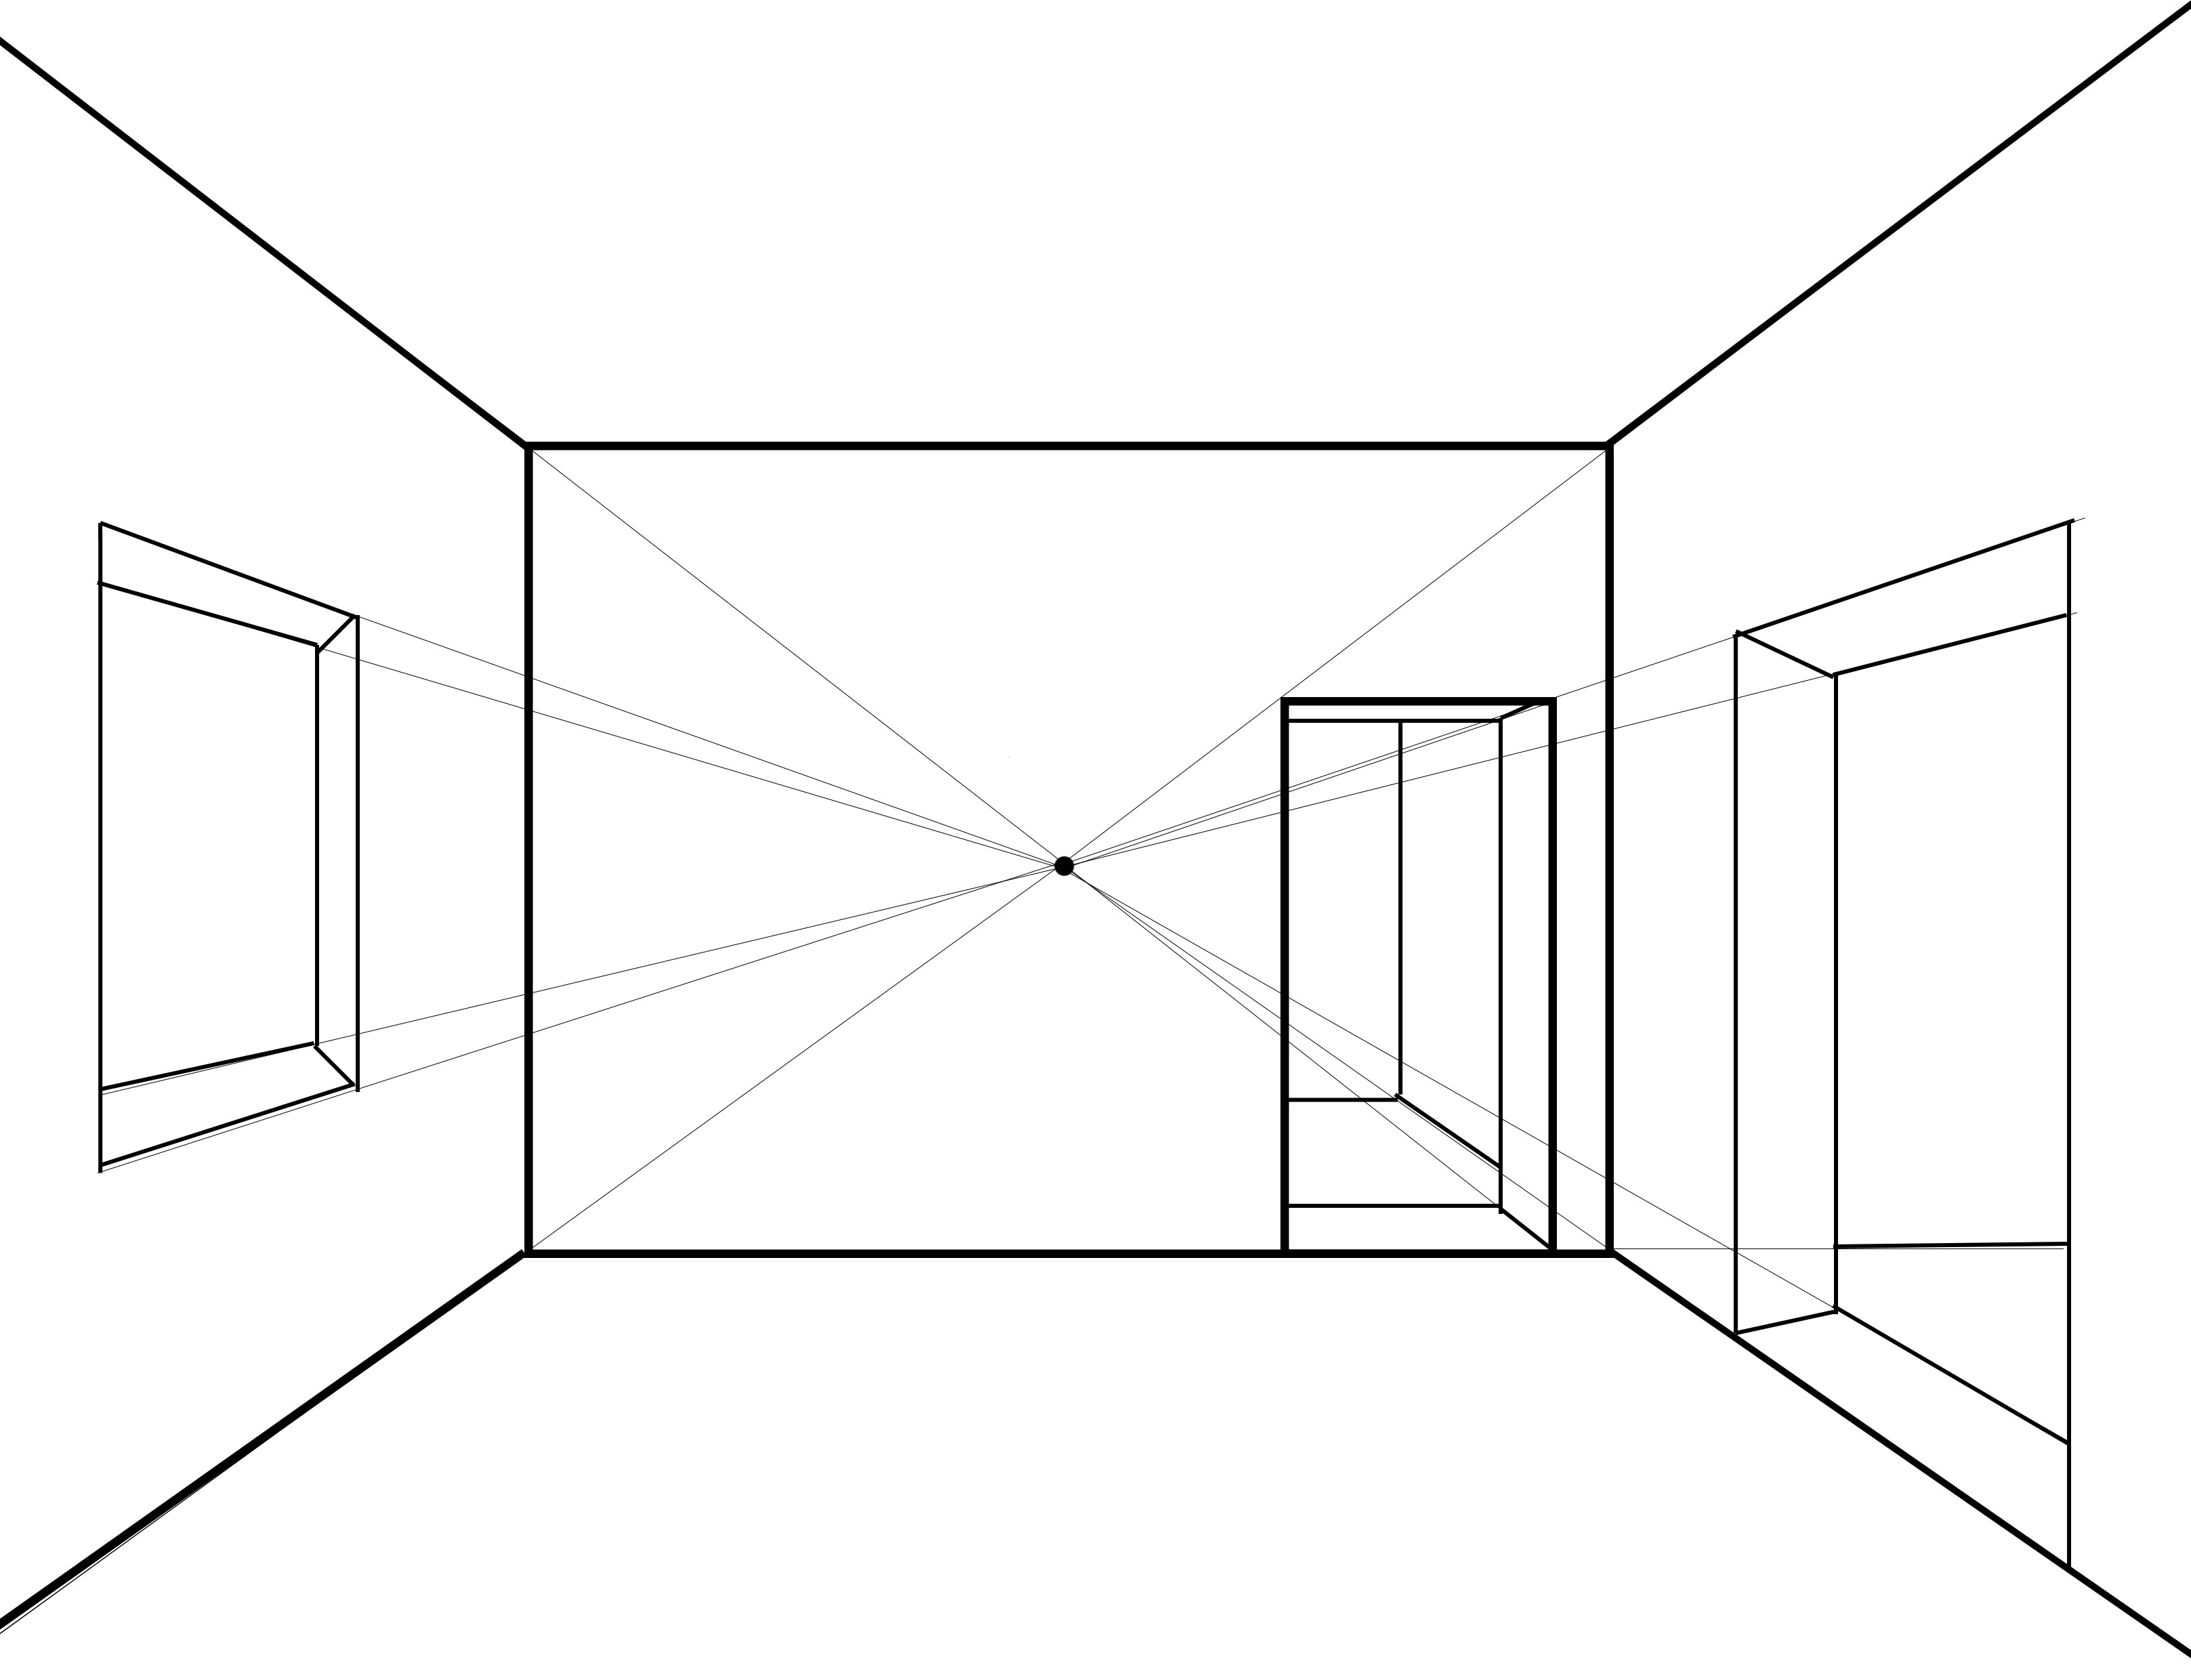 Drawn room vanishing point Learning you is vanishing to